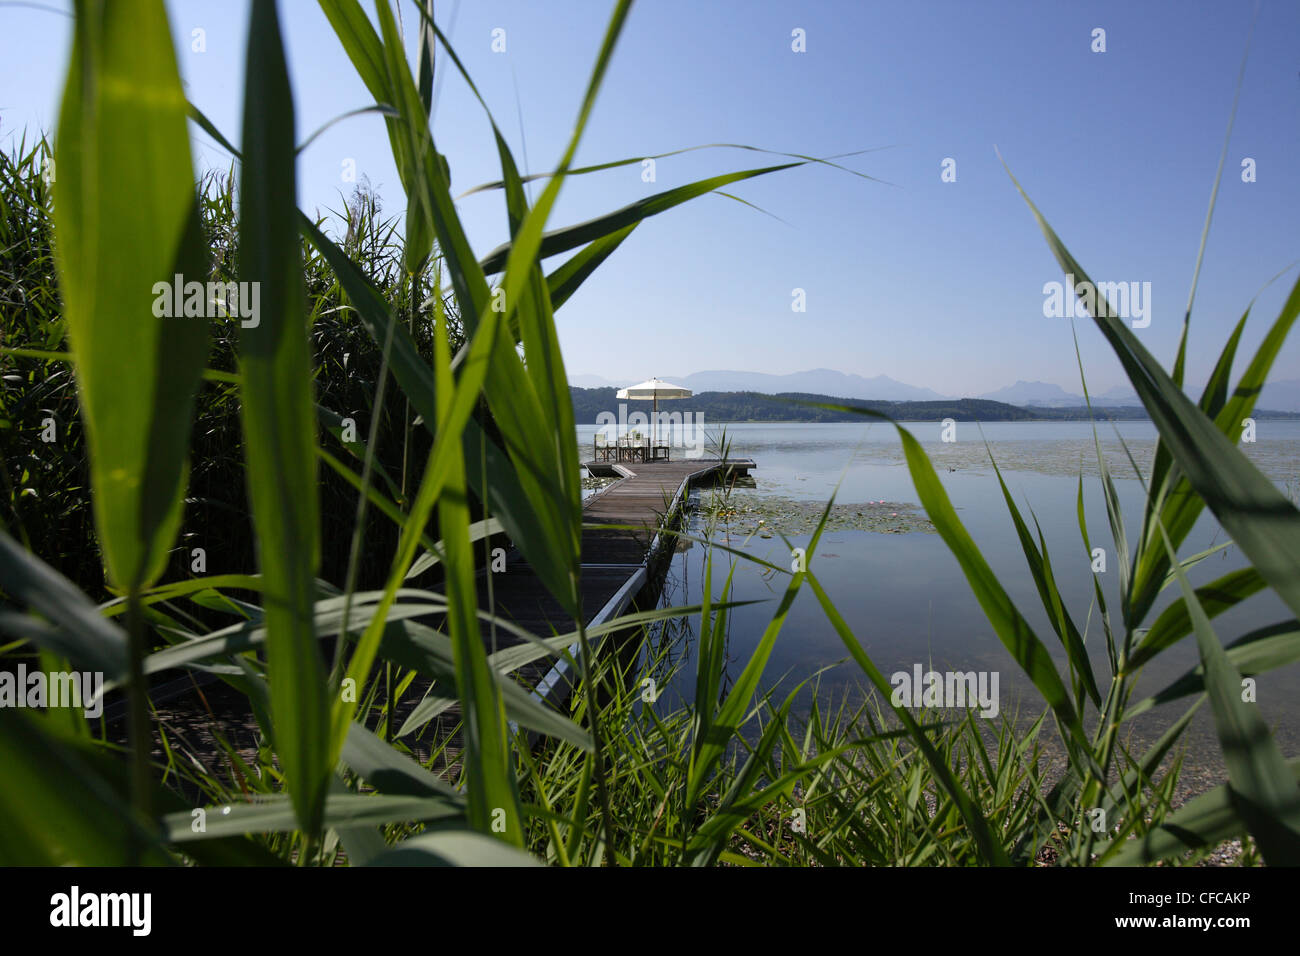 Sunshade on a wooden jetty, Simssee, Bavaria, Germany - Stock Image